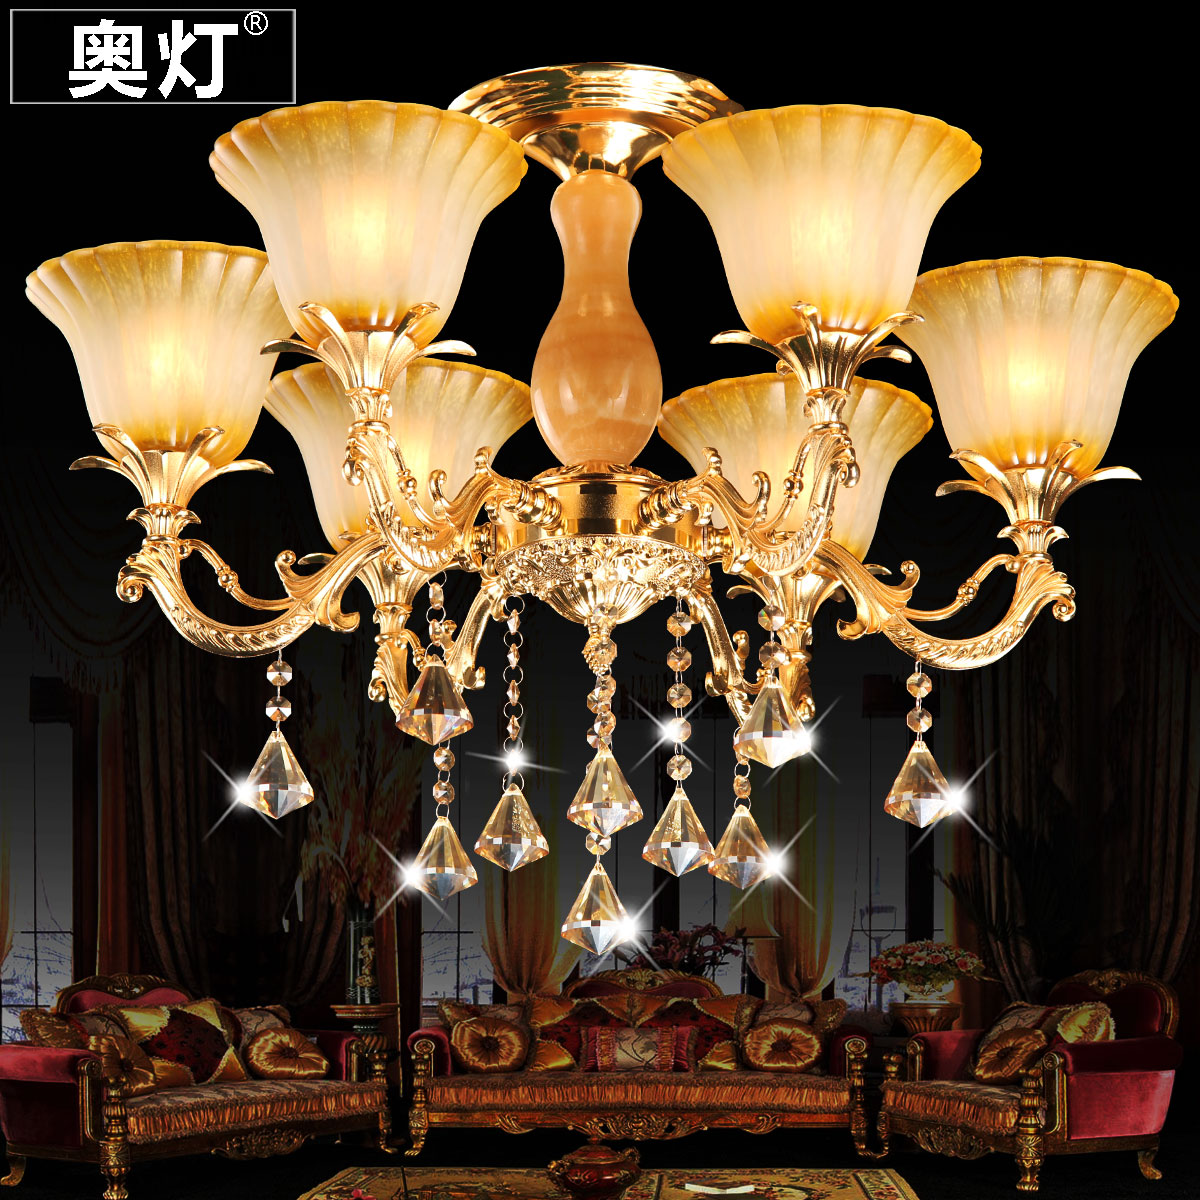 Austrian kirksite euclidian suction chandelier crystal chandelier lamp living room lamp bedroom modern minimalist restaurant lights chandelier suck 9005